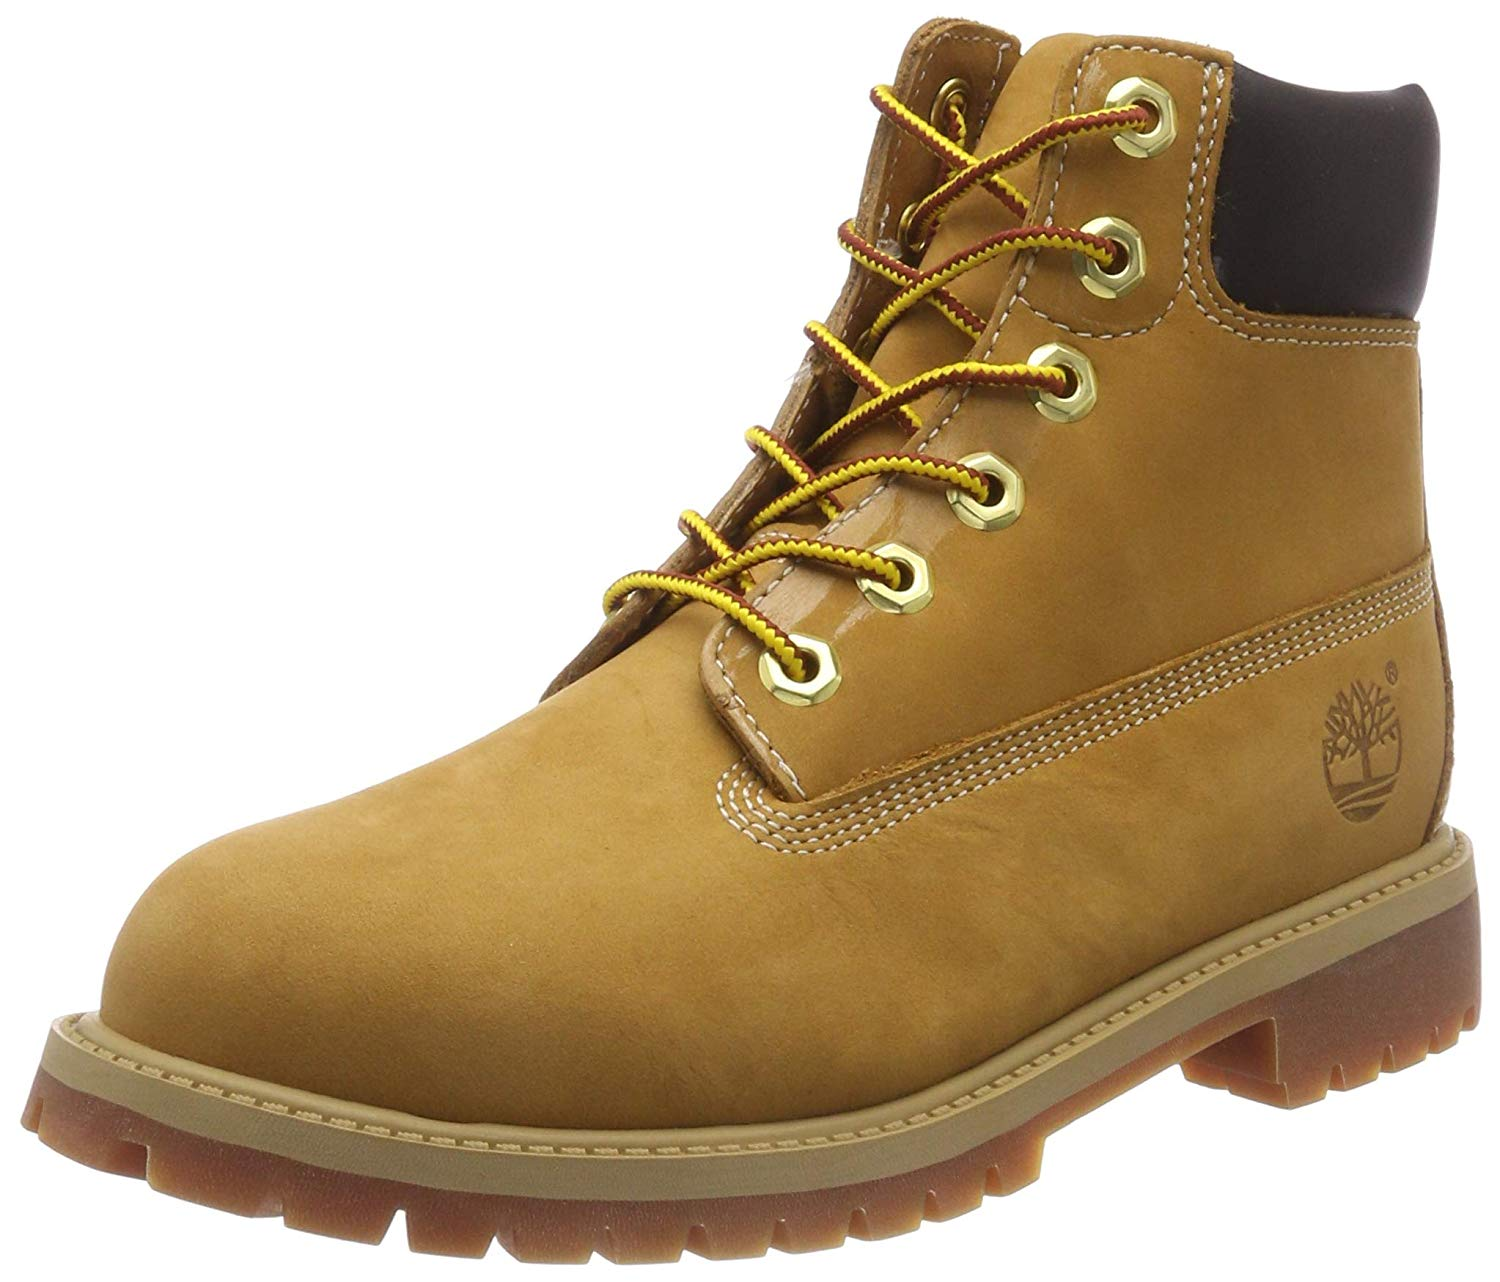 Timberland Boys 6 inch Premium Waterproof Boot Core (Toddler/Little Kid) Wheat Nubuck 6.5